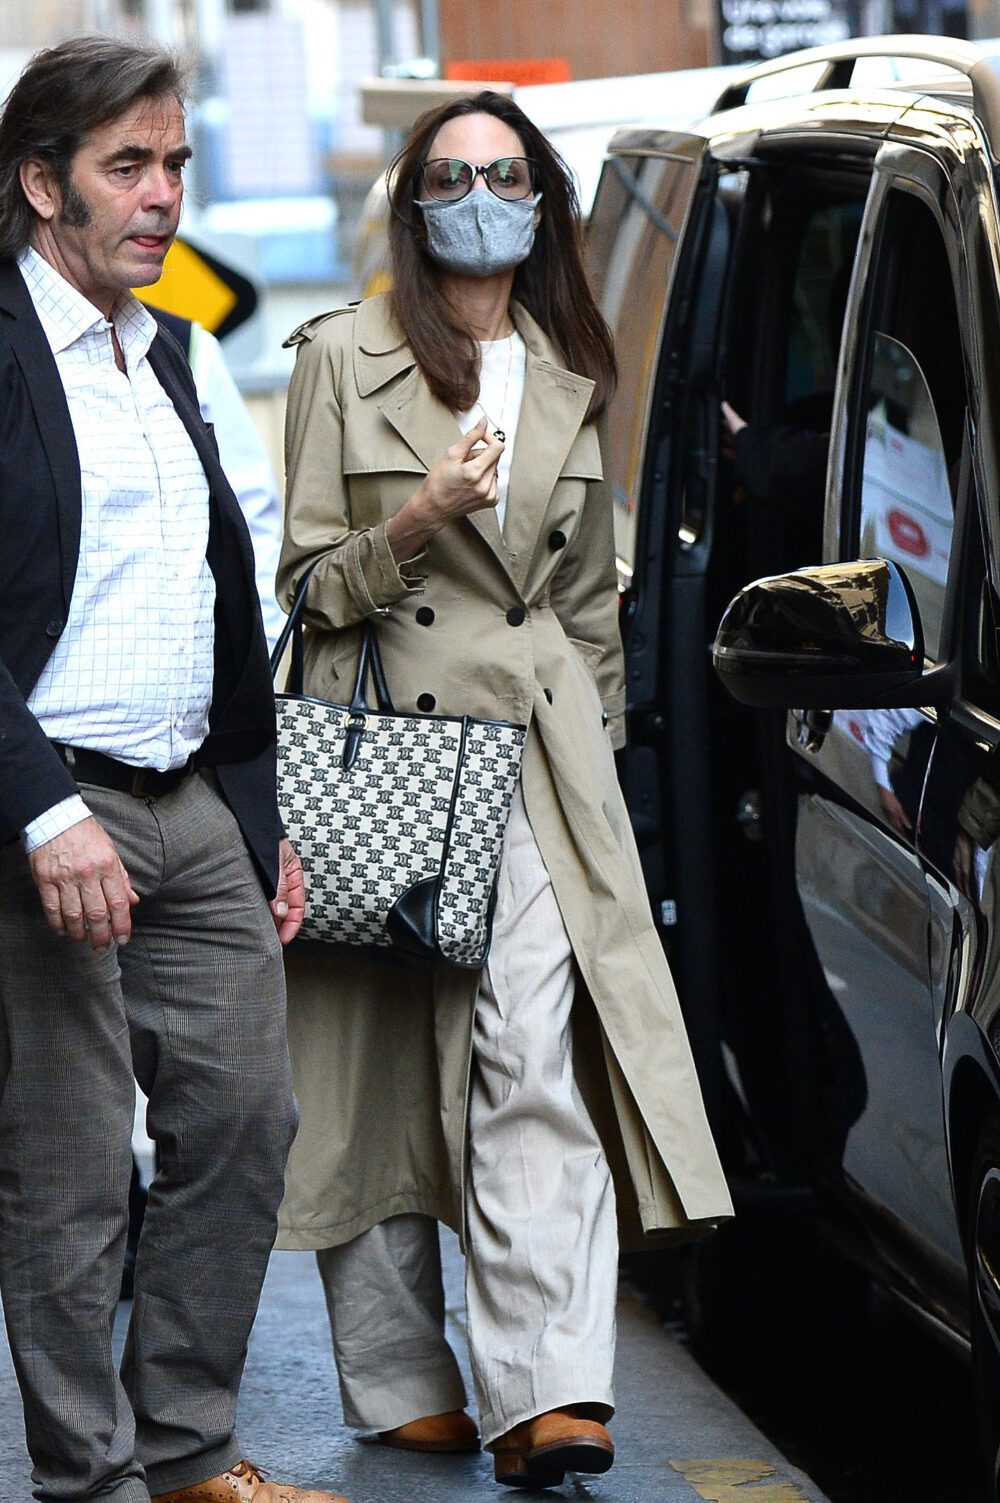 Angelina Jolie and children,Pax, Sahara and Shilo leave their hotel in Paris